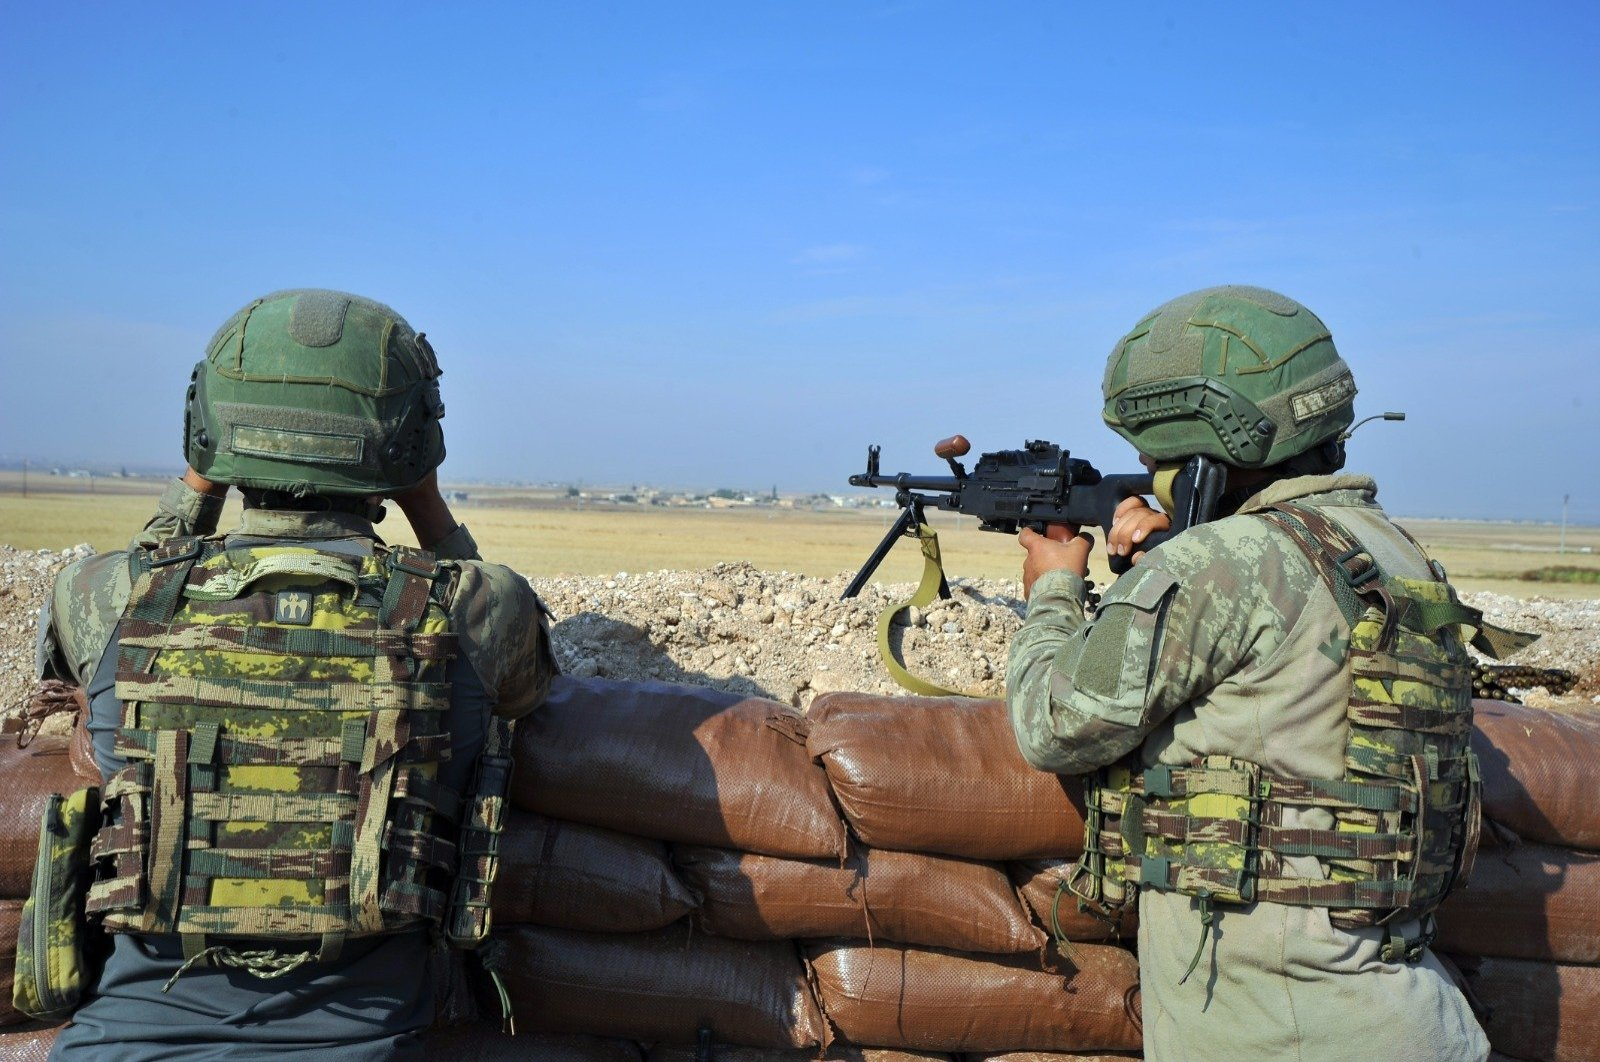 Turkish security forces regularly conduct counterterrorism operations in the eastern and southeastern provinces of Turkey where the PKK has attempted to establish a strong presence, July 8, 2020. (DHA Photo)